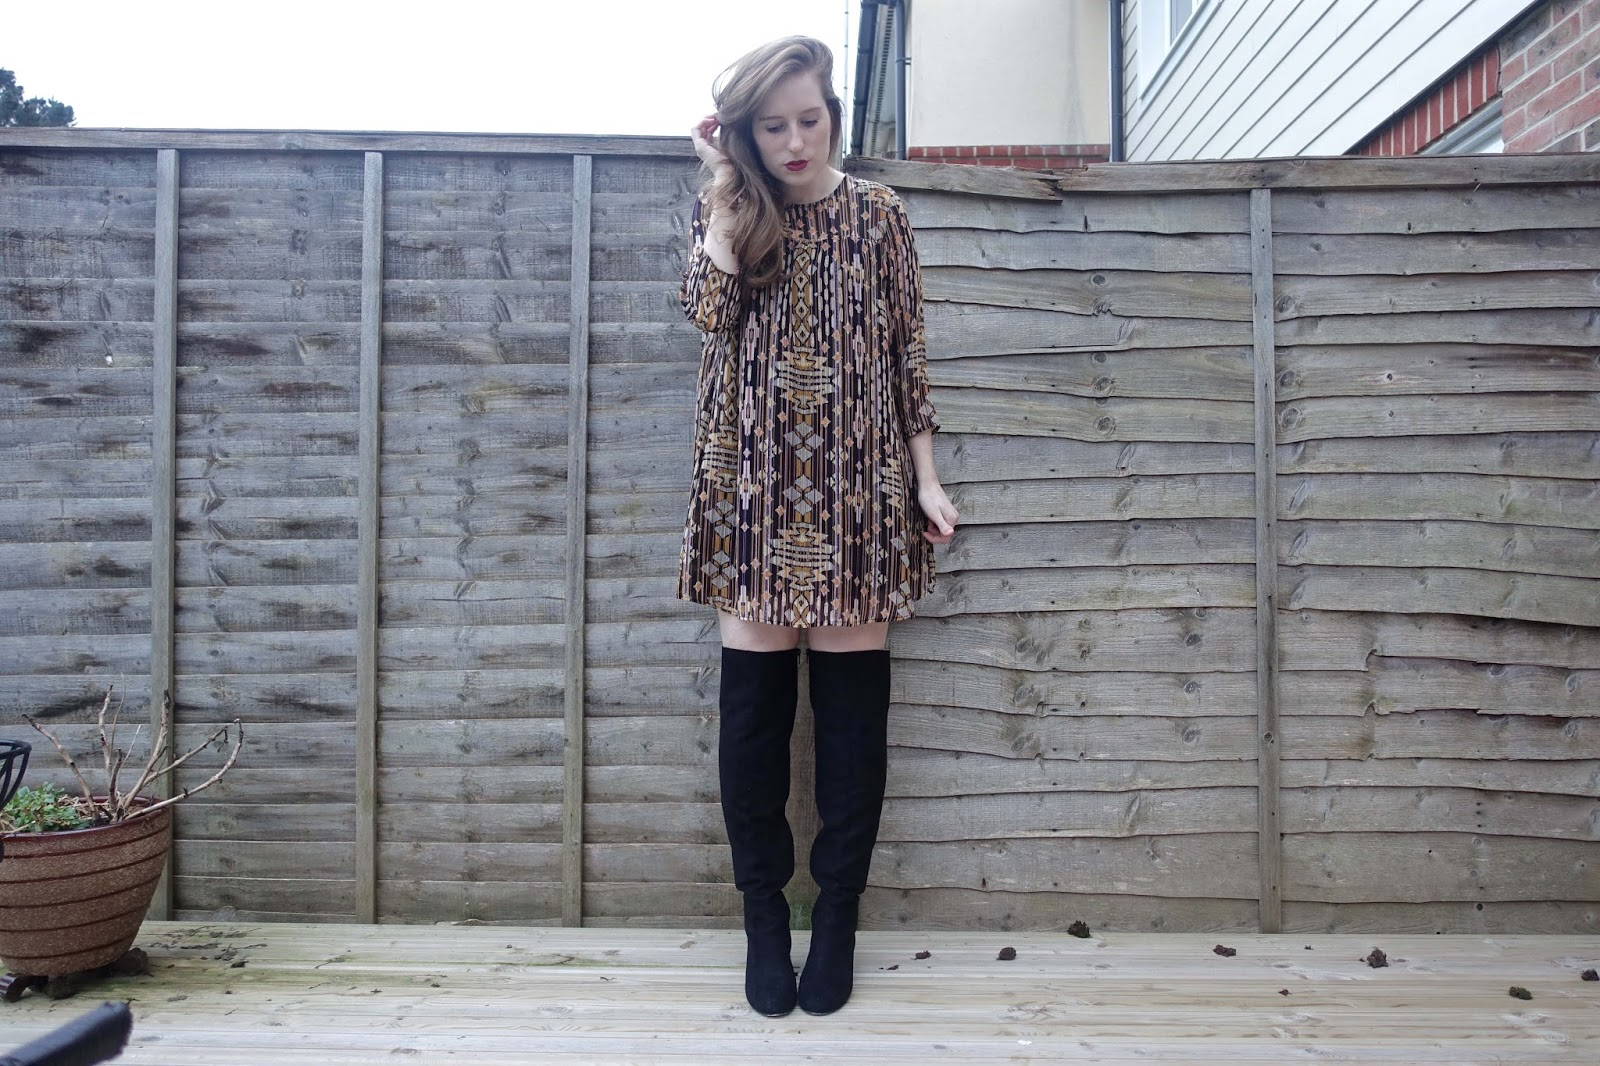 UK fashion blogger rightupmystreet